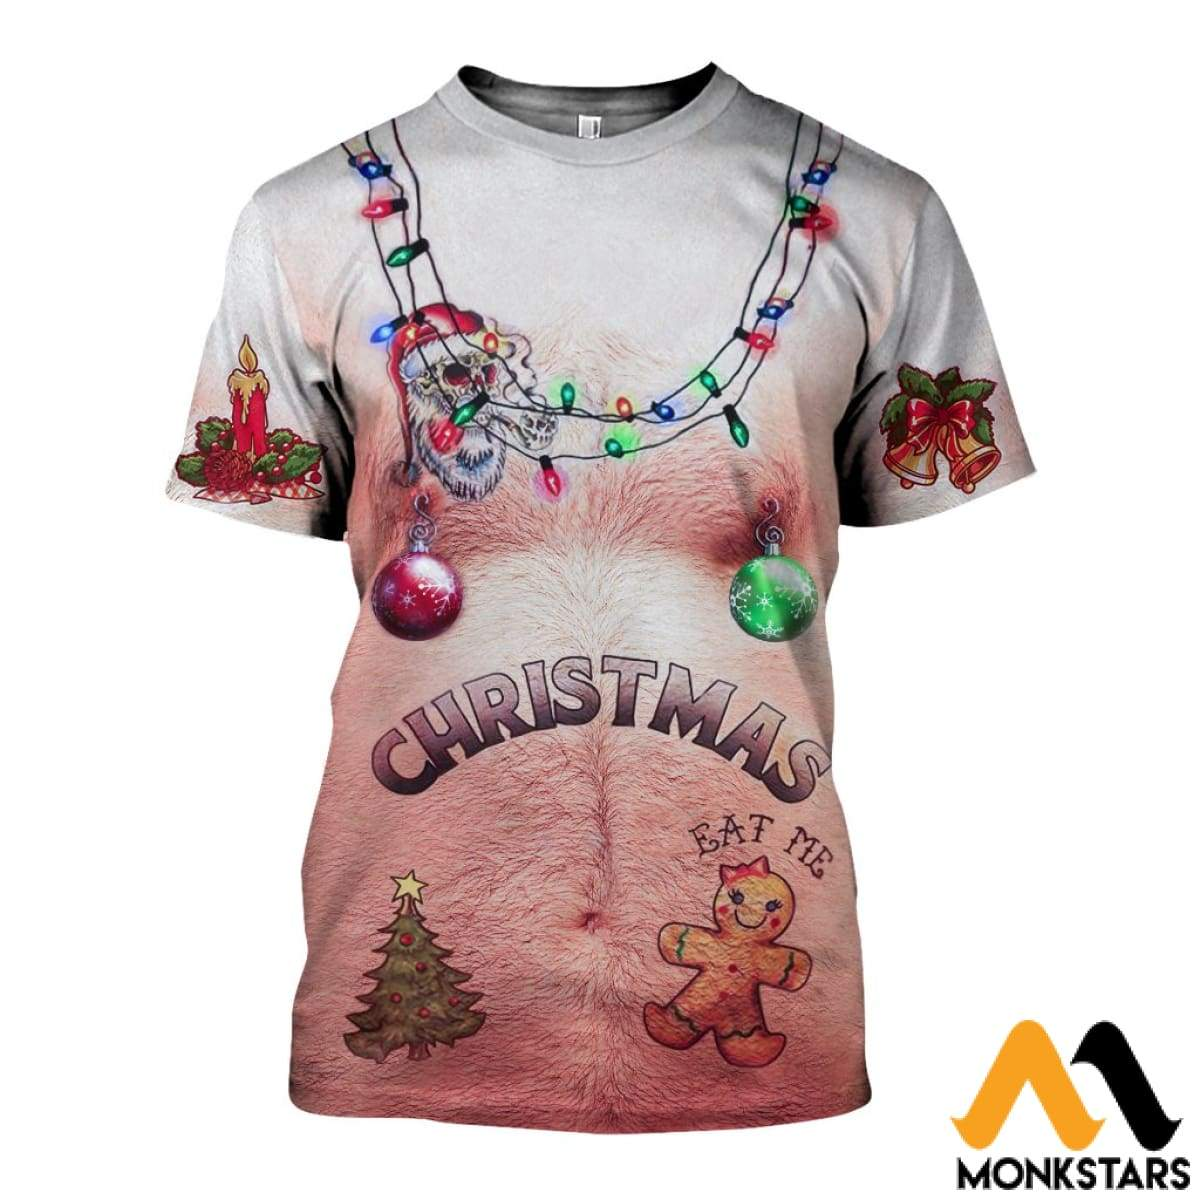 dd9b1b9210a7 3D Hairy Chest And Tattoos White Ugly Christmas Shirts T-Shirt   Xs